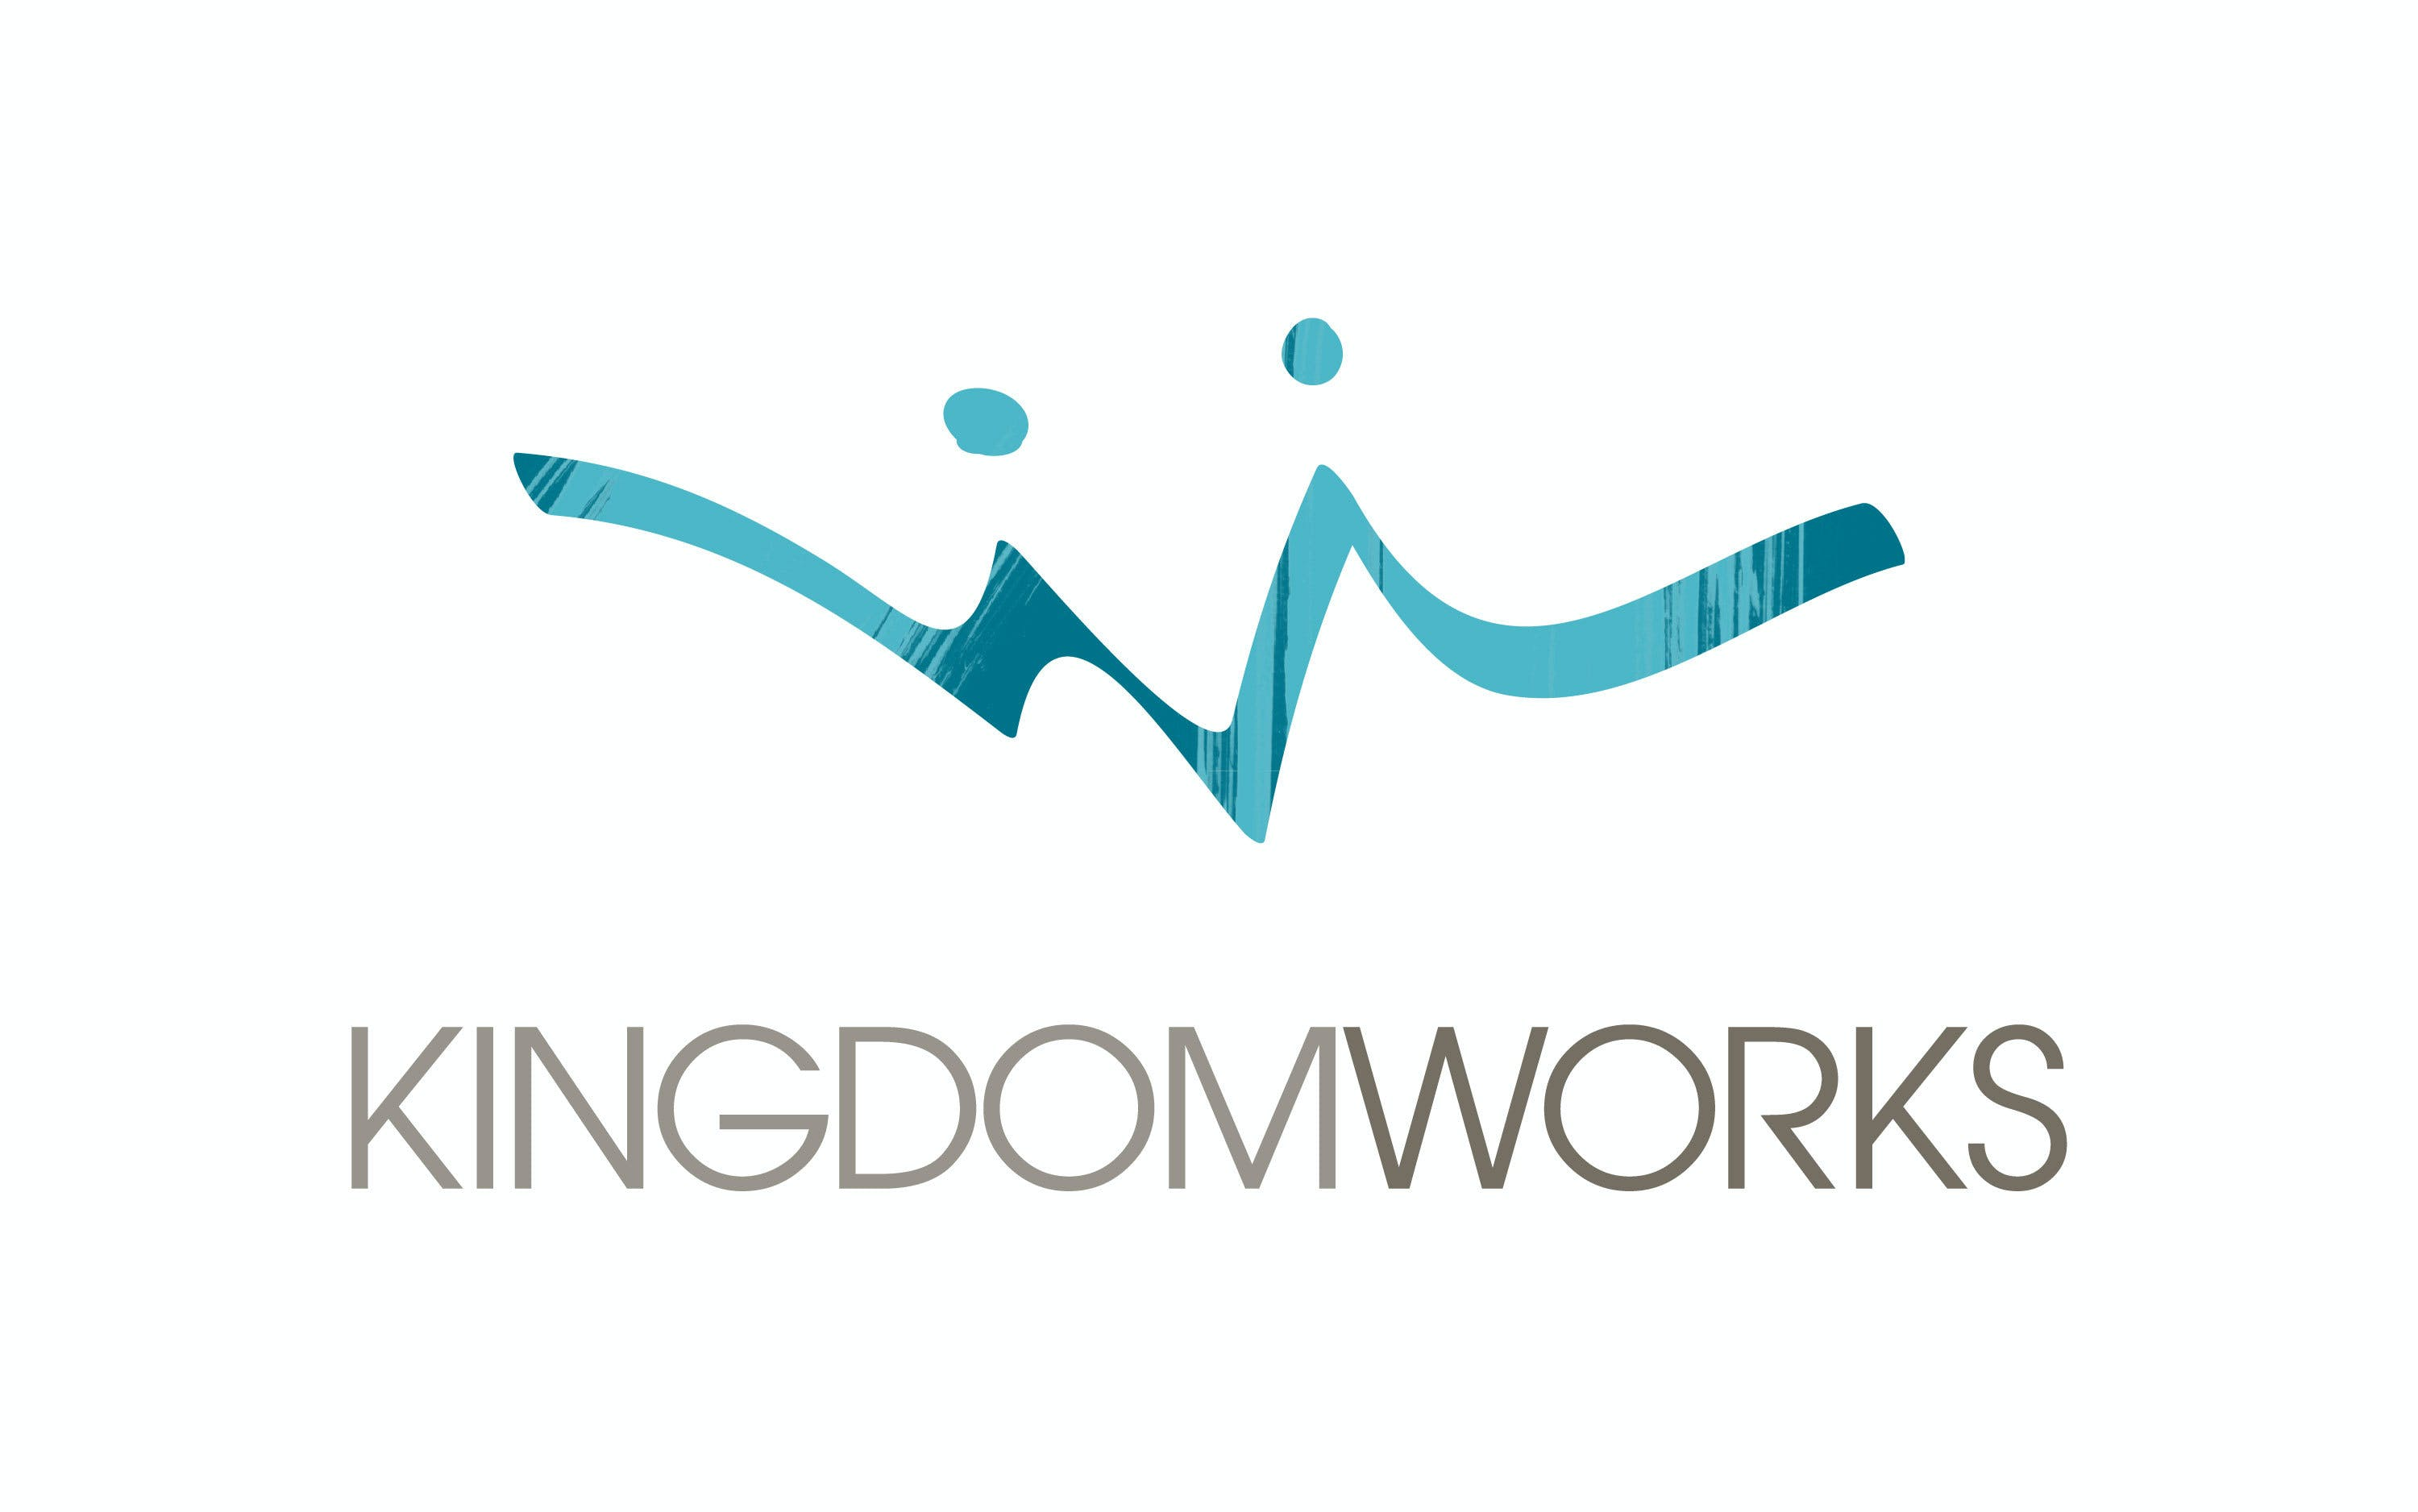 Final Kingdomworks Logo